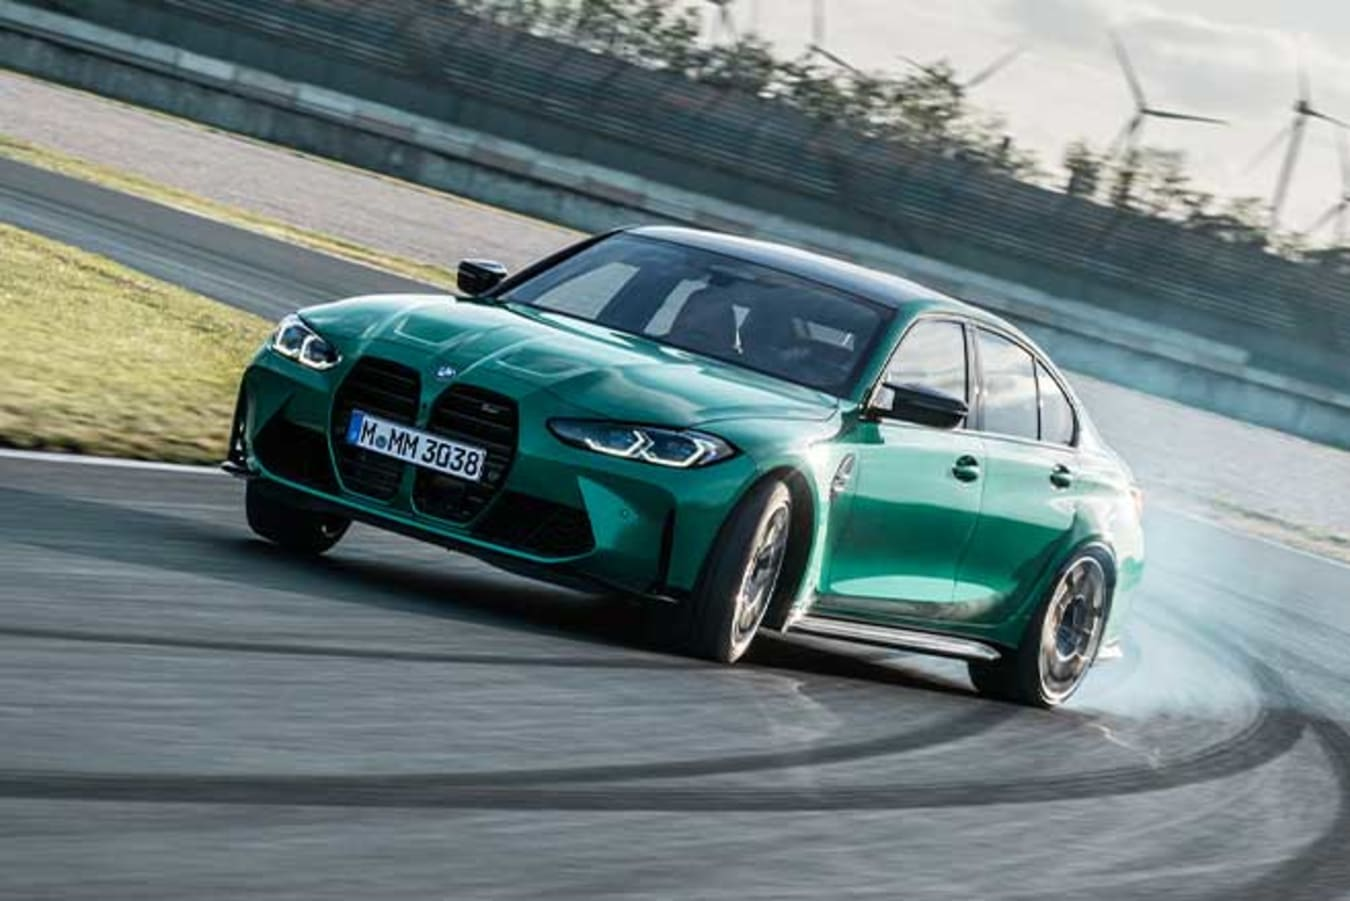 2021 BMW M3 Competition drifting on a racetrack.